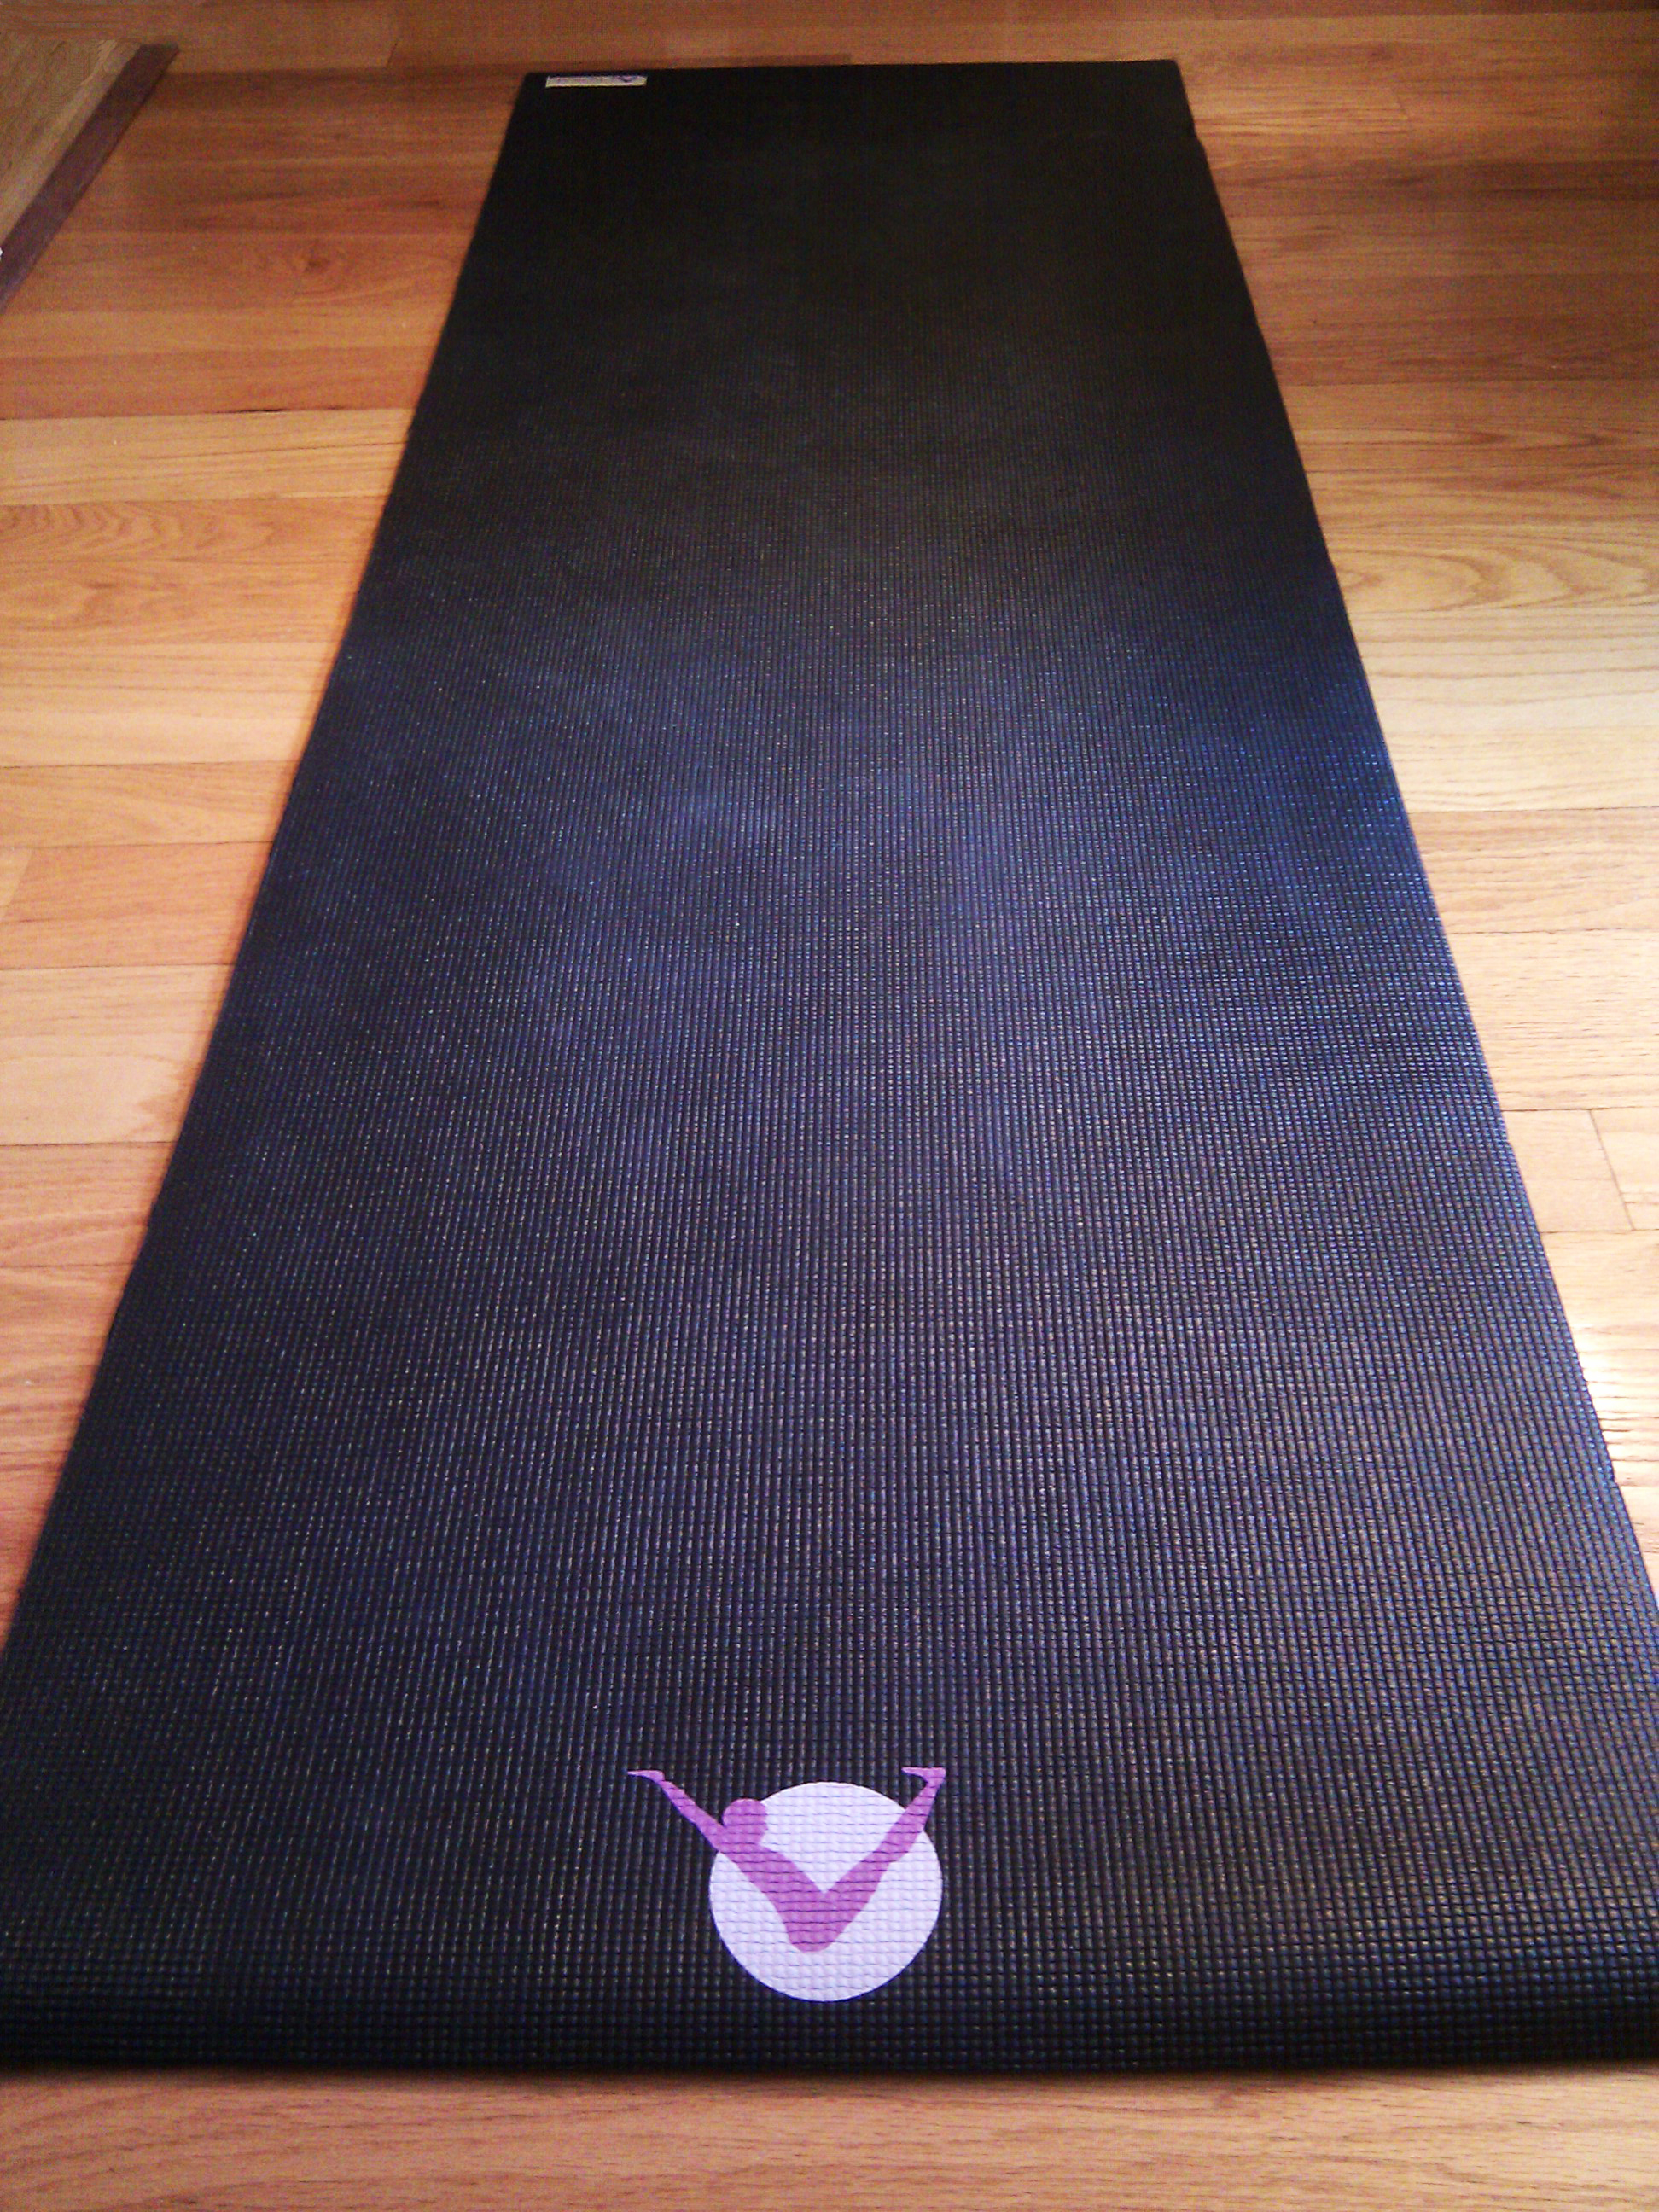 yoga hot best domyos gentle id mats mat by for purple decathlon